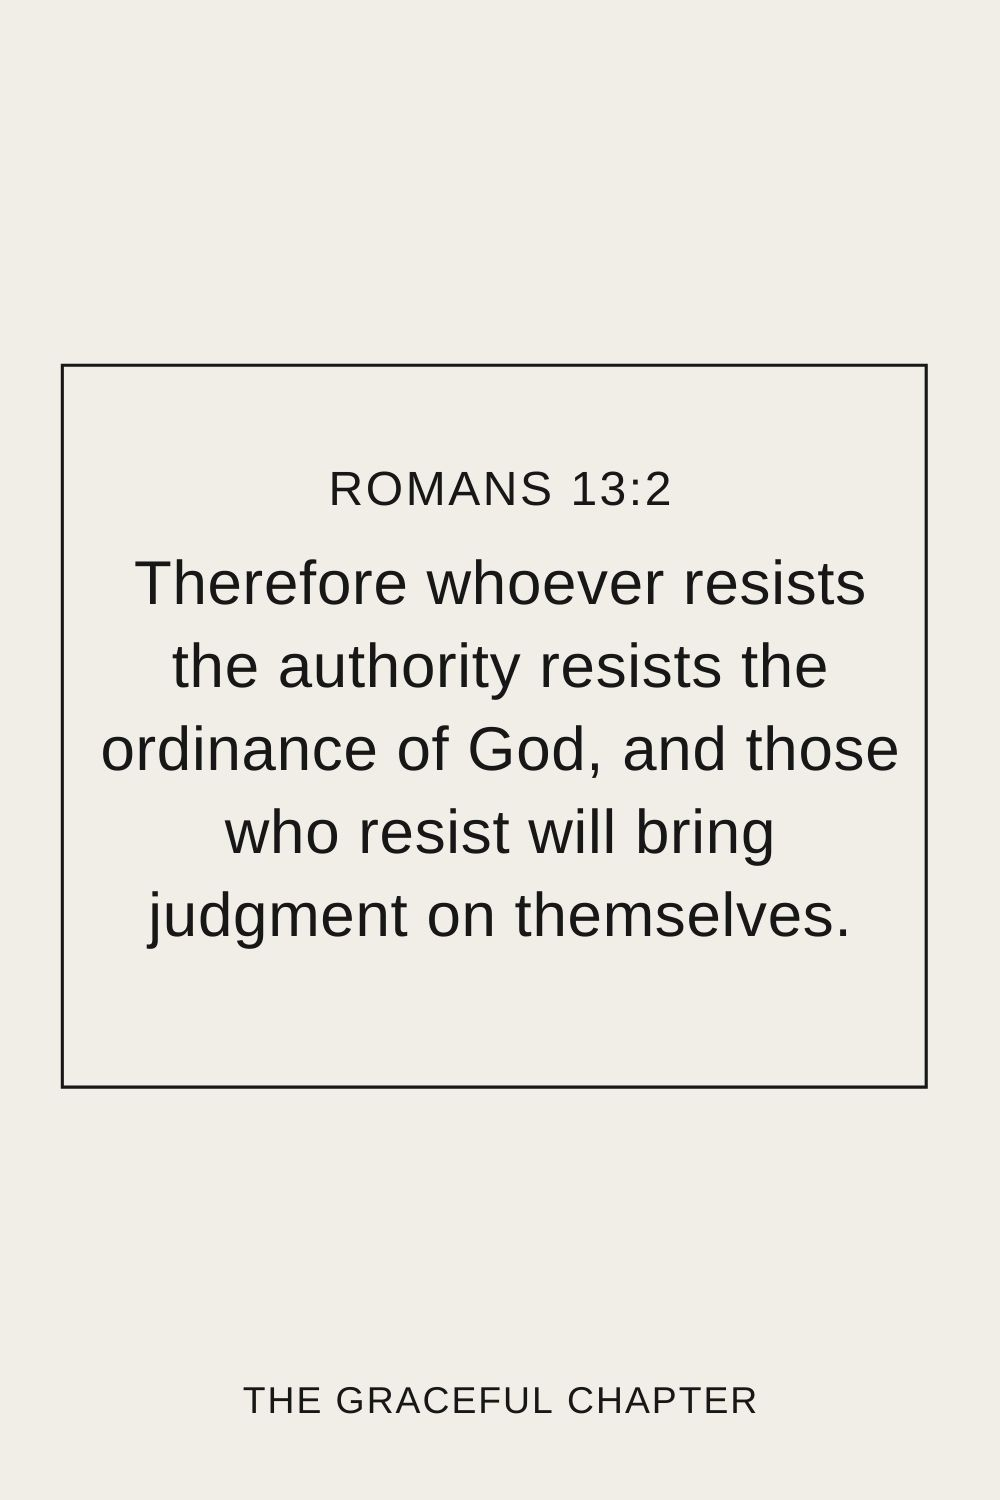 Therefore whoever resists the authority resists the ordinance of God, and those who resist will bring judgment on themselves. Romans 13:2